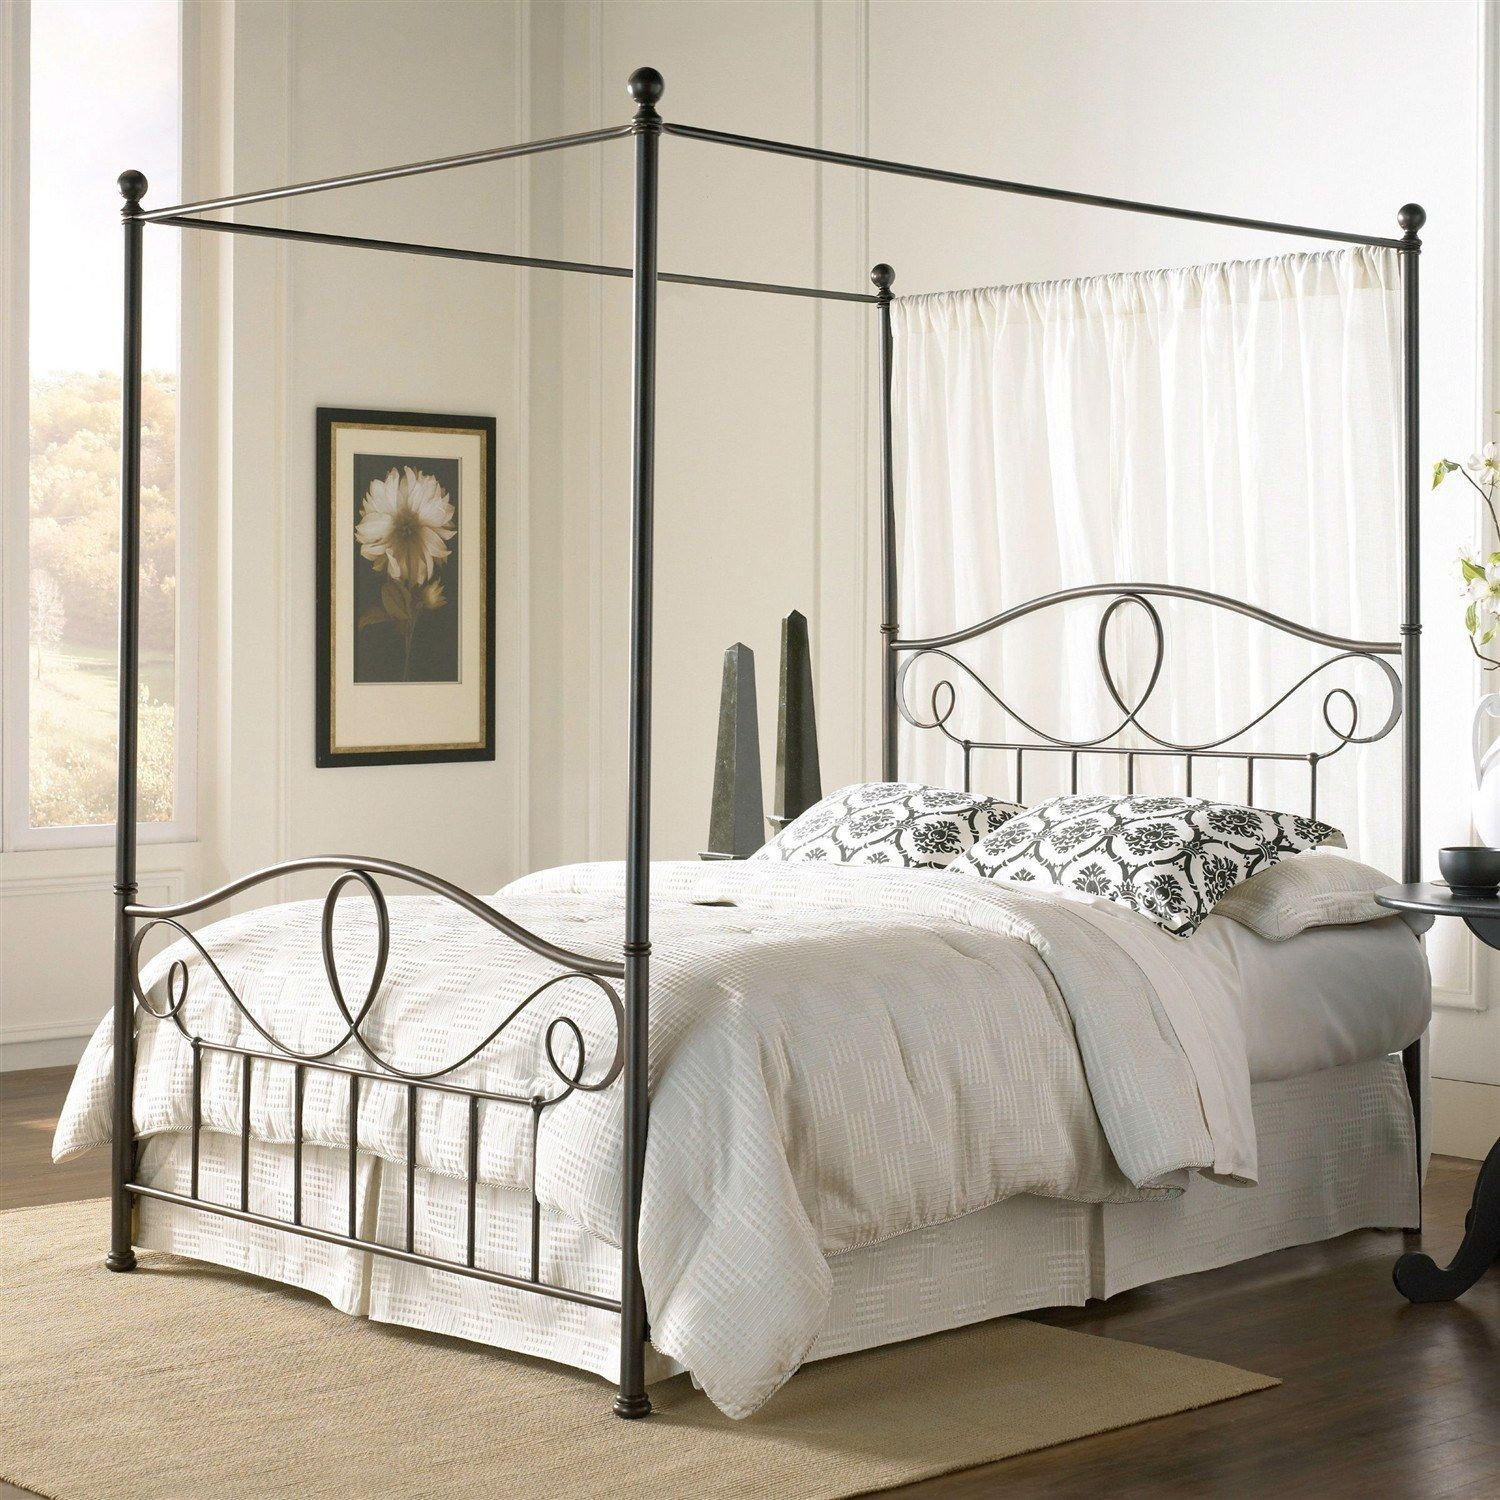 Full size Complete Metal Canopy Bed with Scroll-work and Ball ...